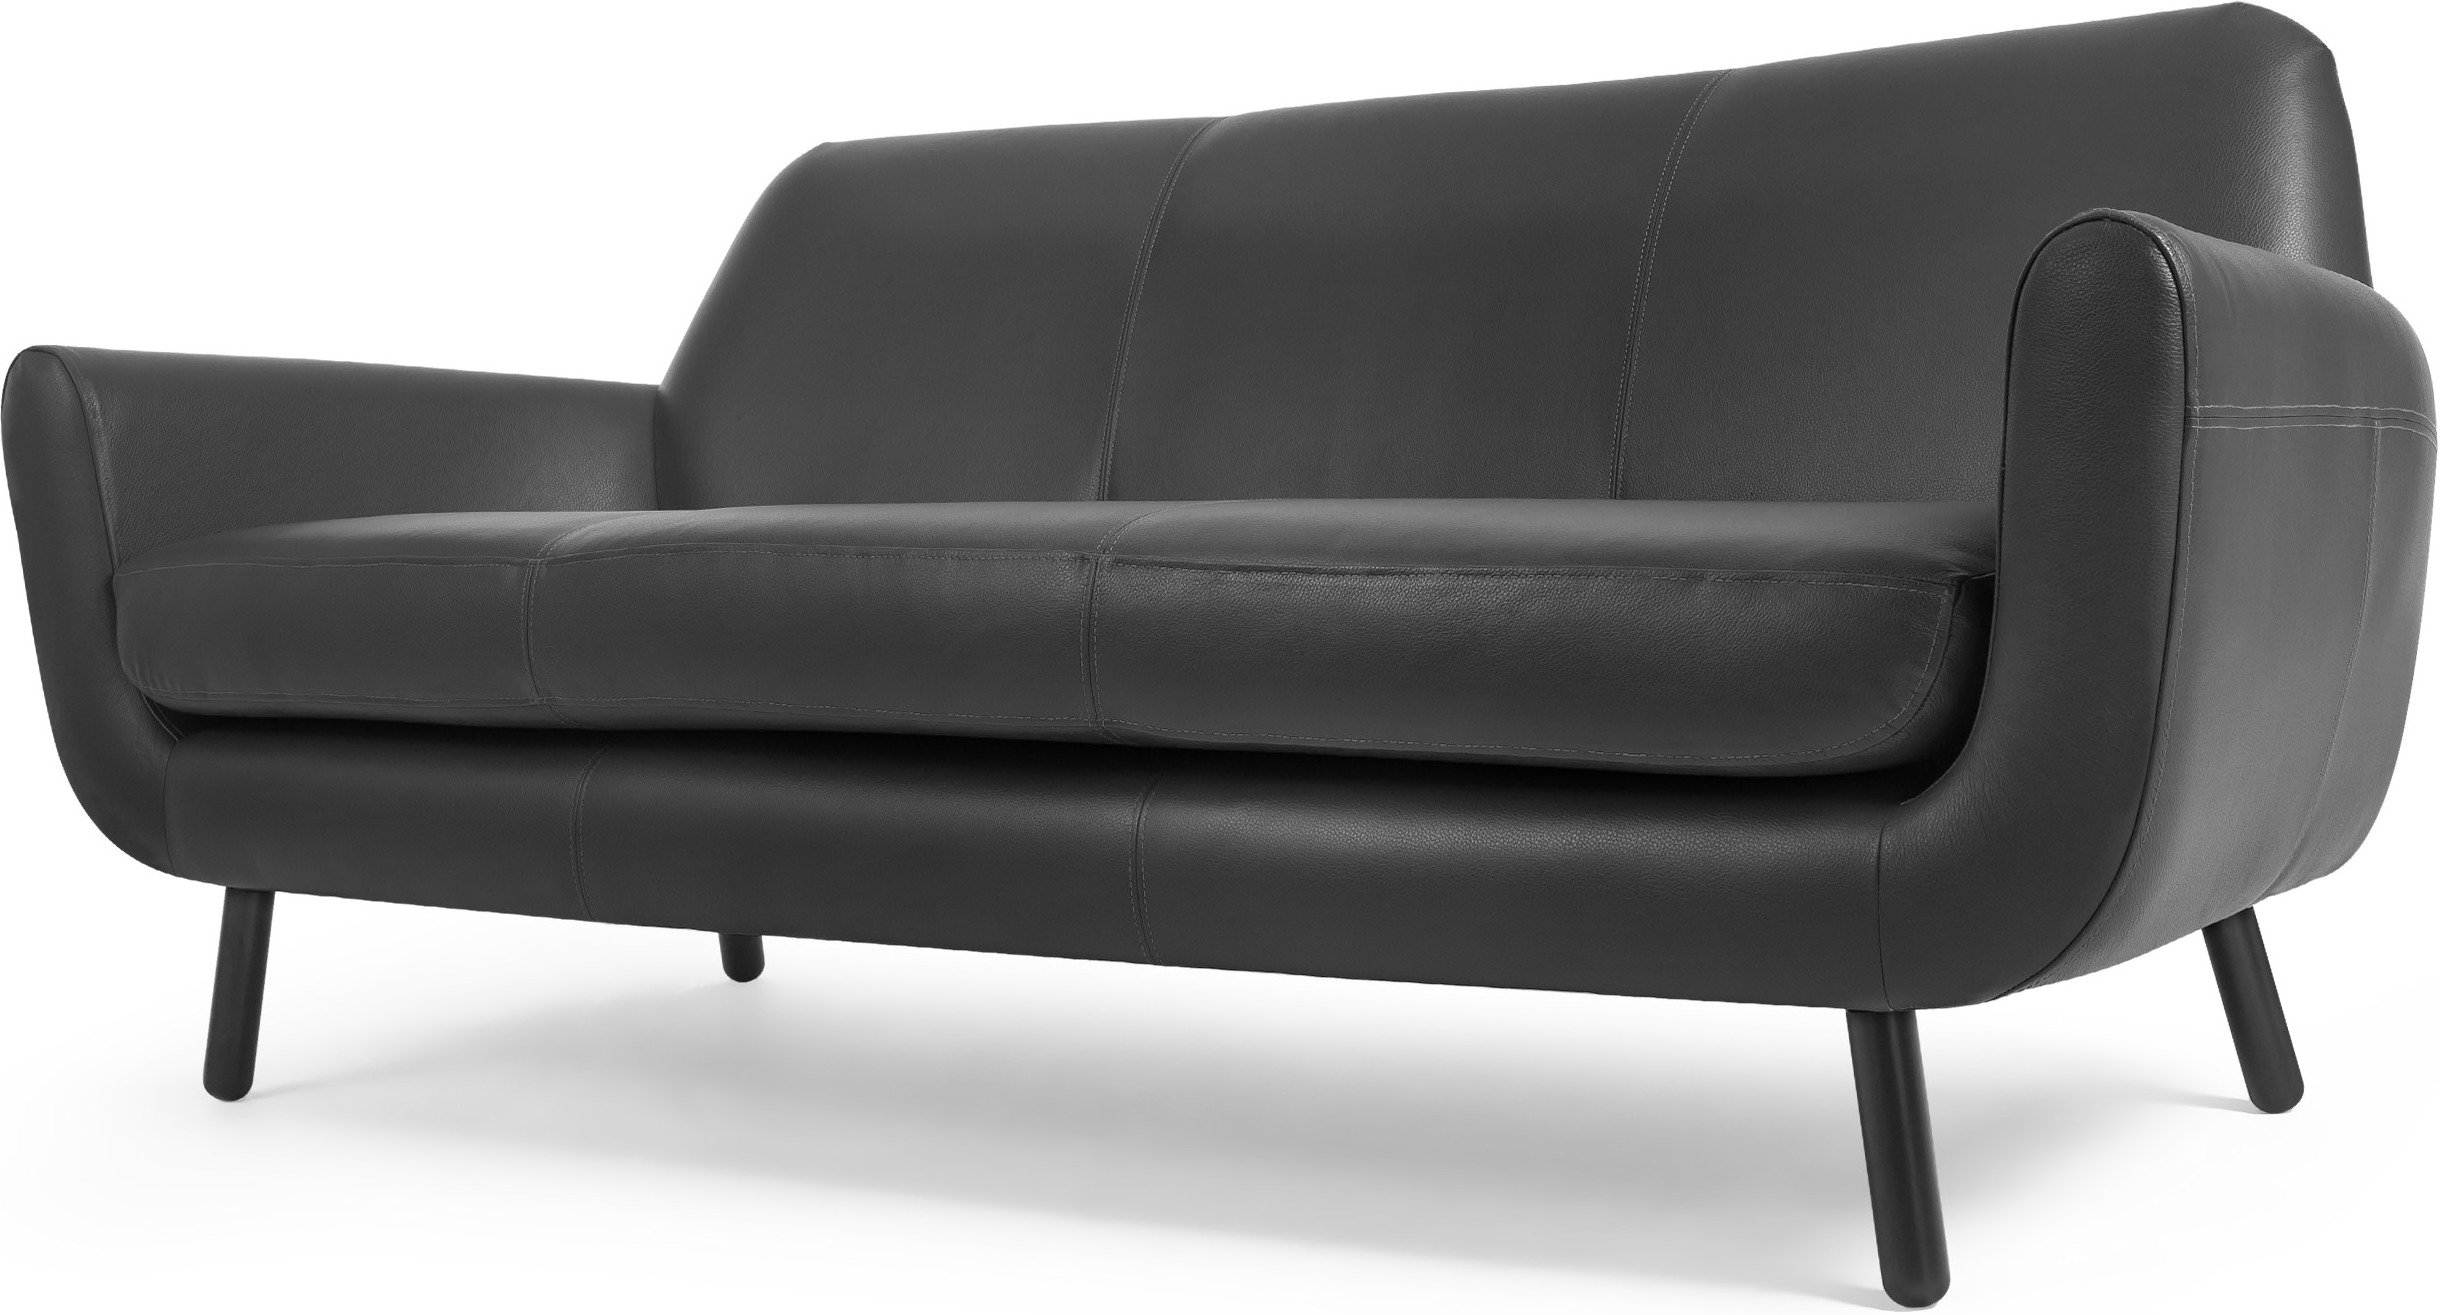 3 seater black leather sofa 2 hand beds buy cheap compare sofas